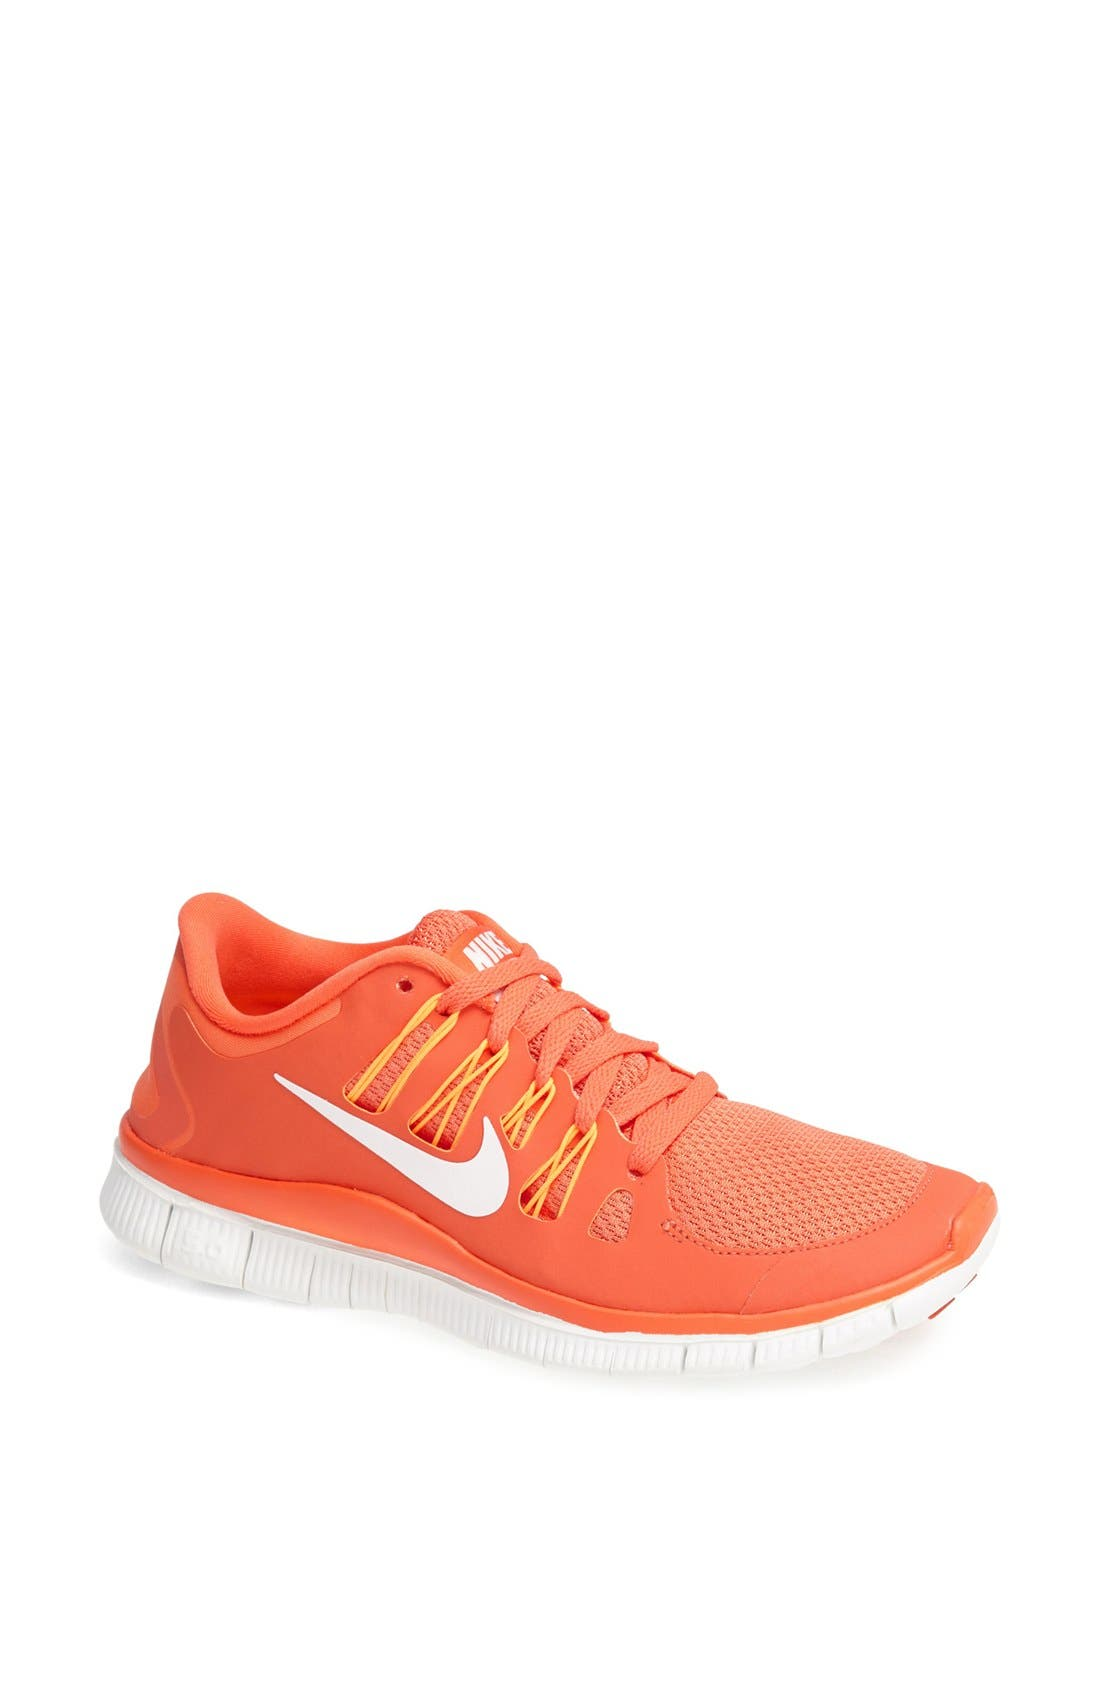 Alternate Image 1 Selected - Nike 'Free 5.0' Running Shoe (Women)